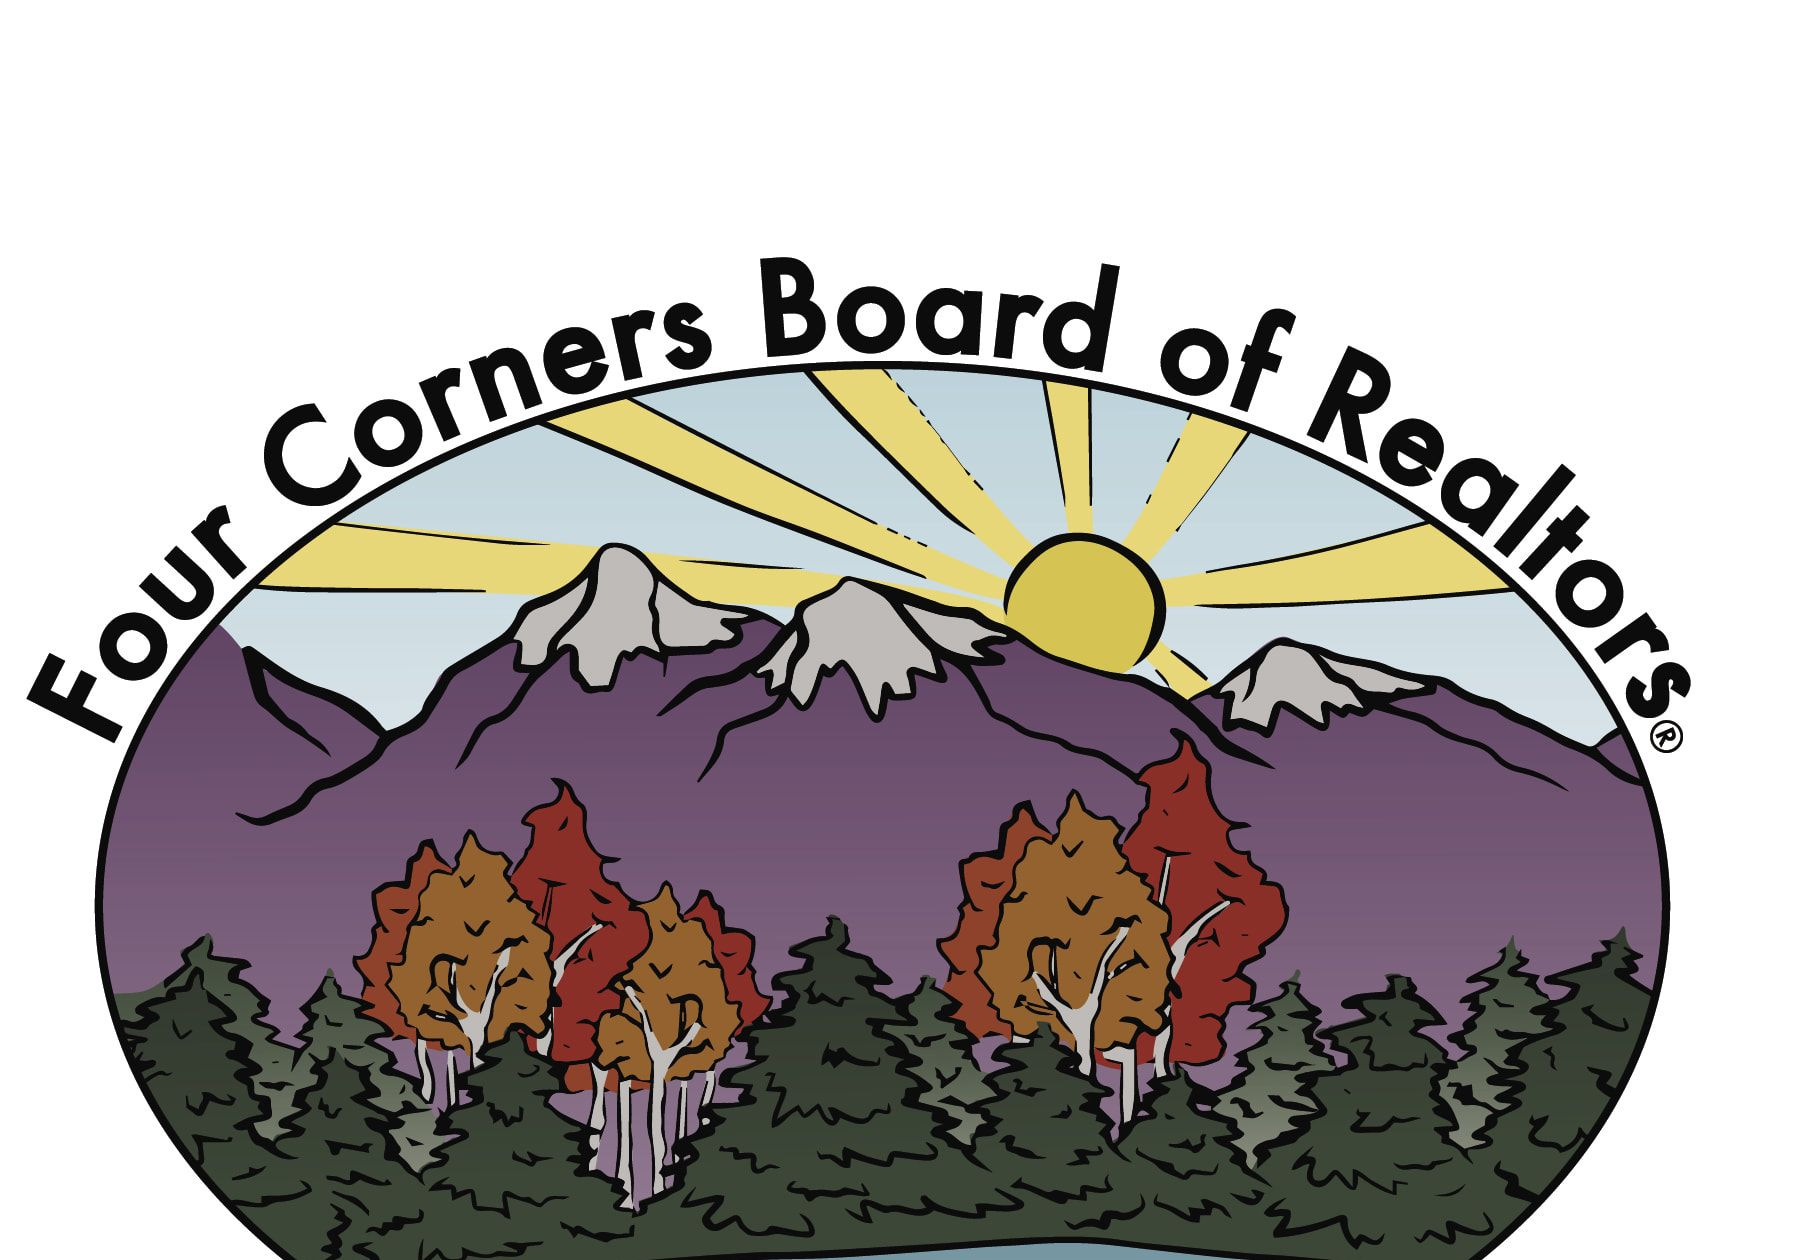 National association of realtors clipart png royalty free download Four Corners Board of Realtors png royalty free download